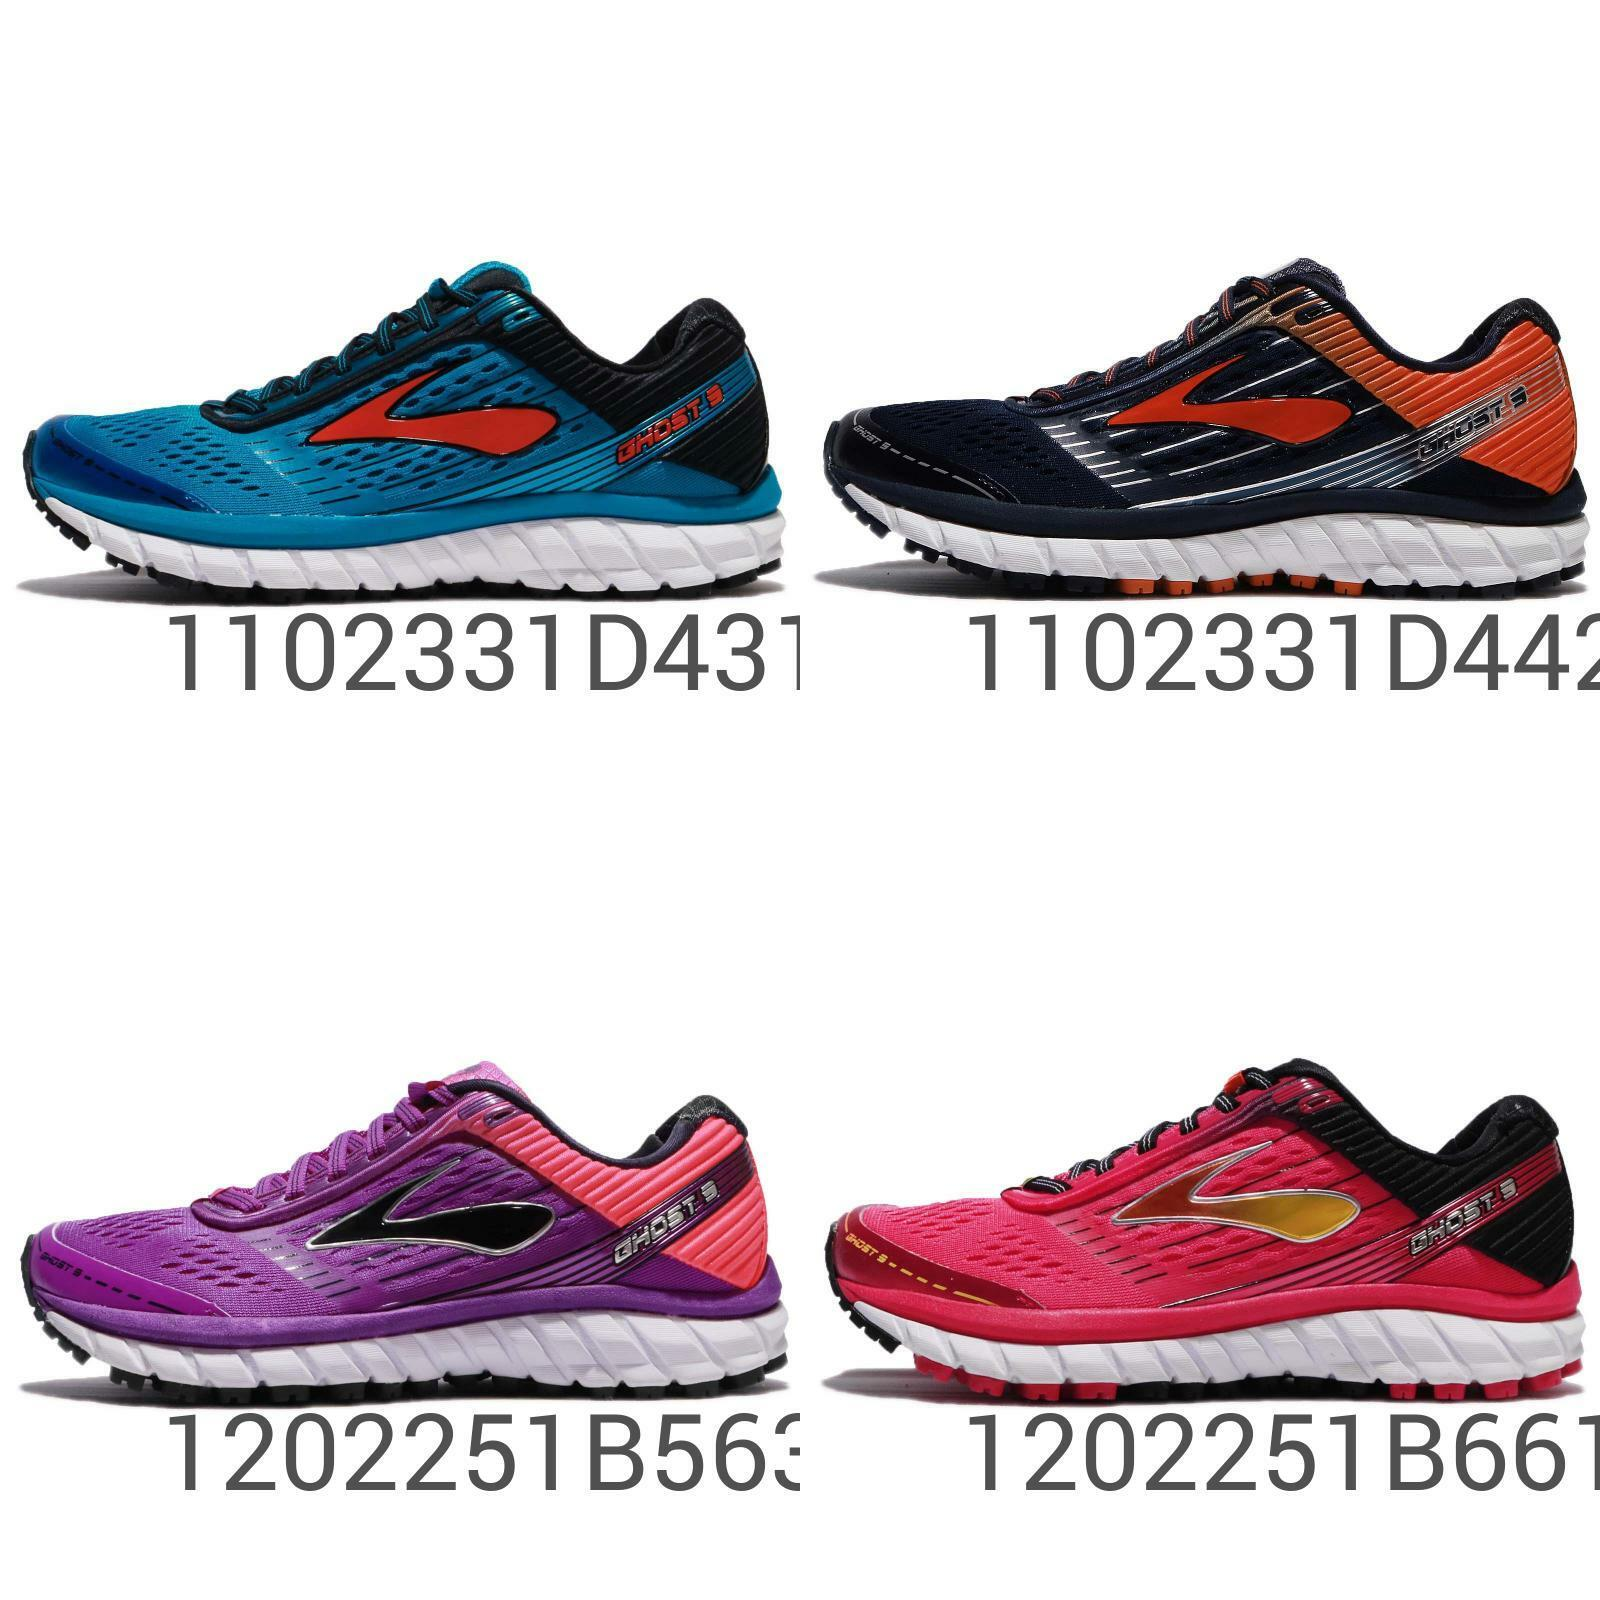 Brooks Ghost 9 hommes femmesNeutral Cushion RunningChaussuresSneakers Pick 1